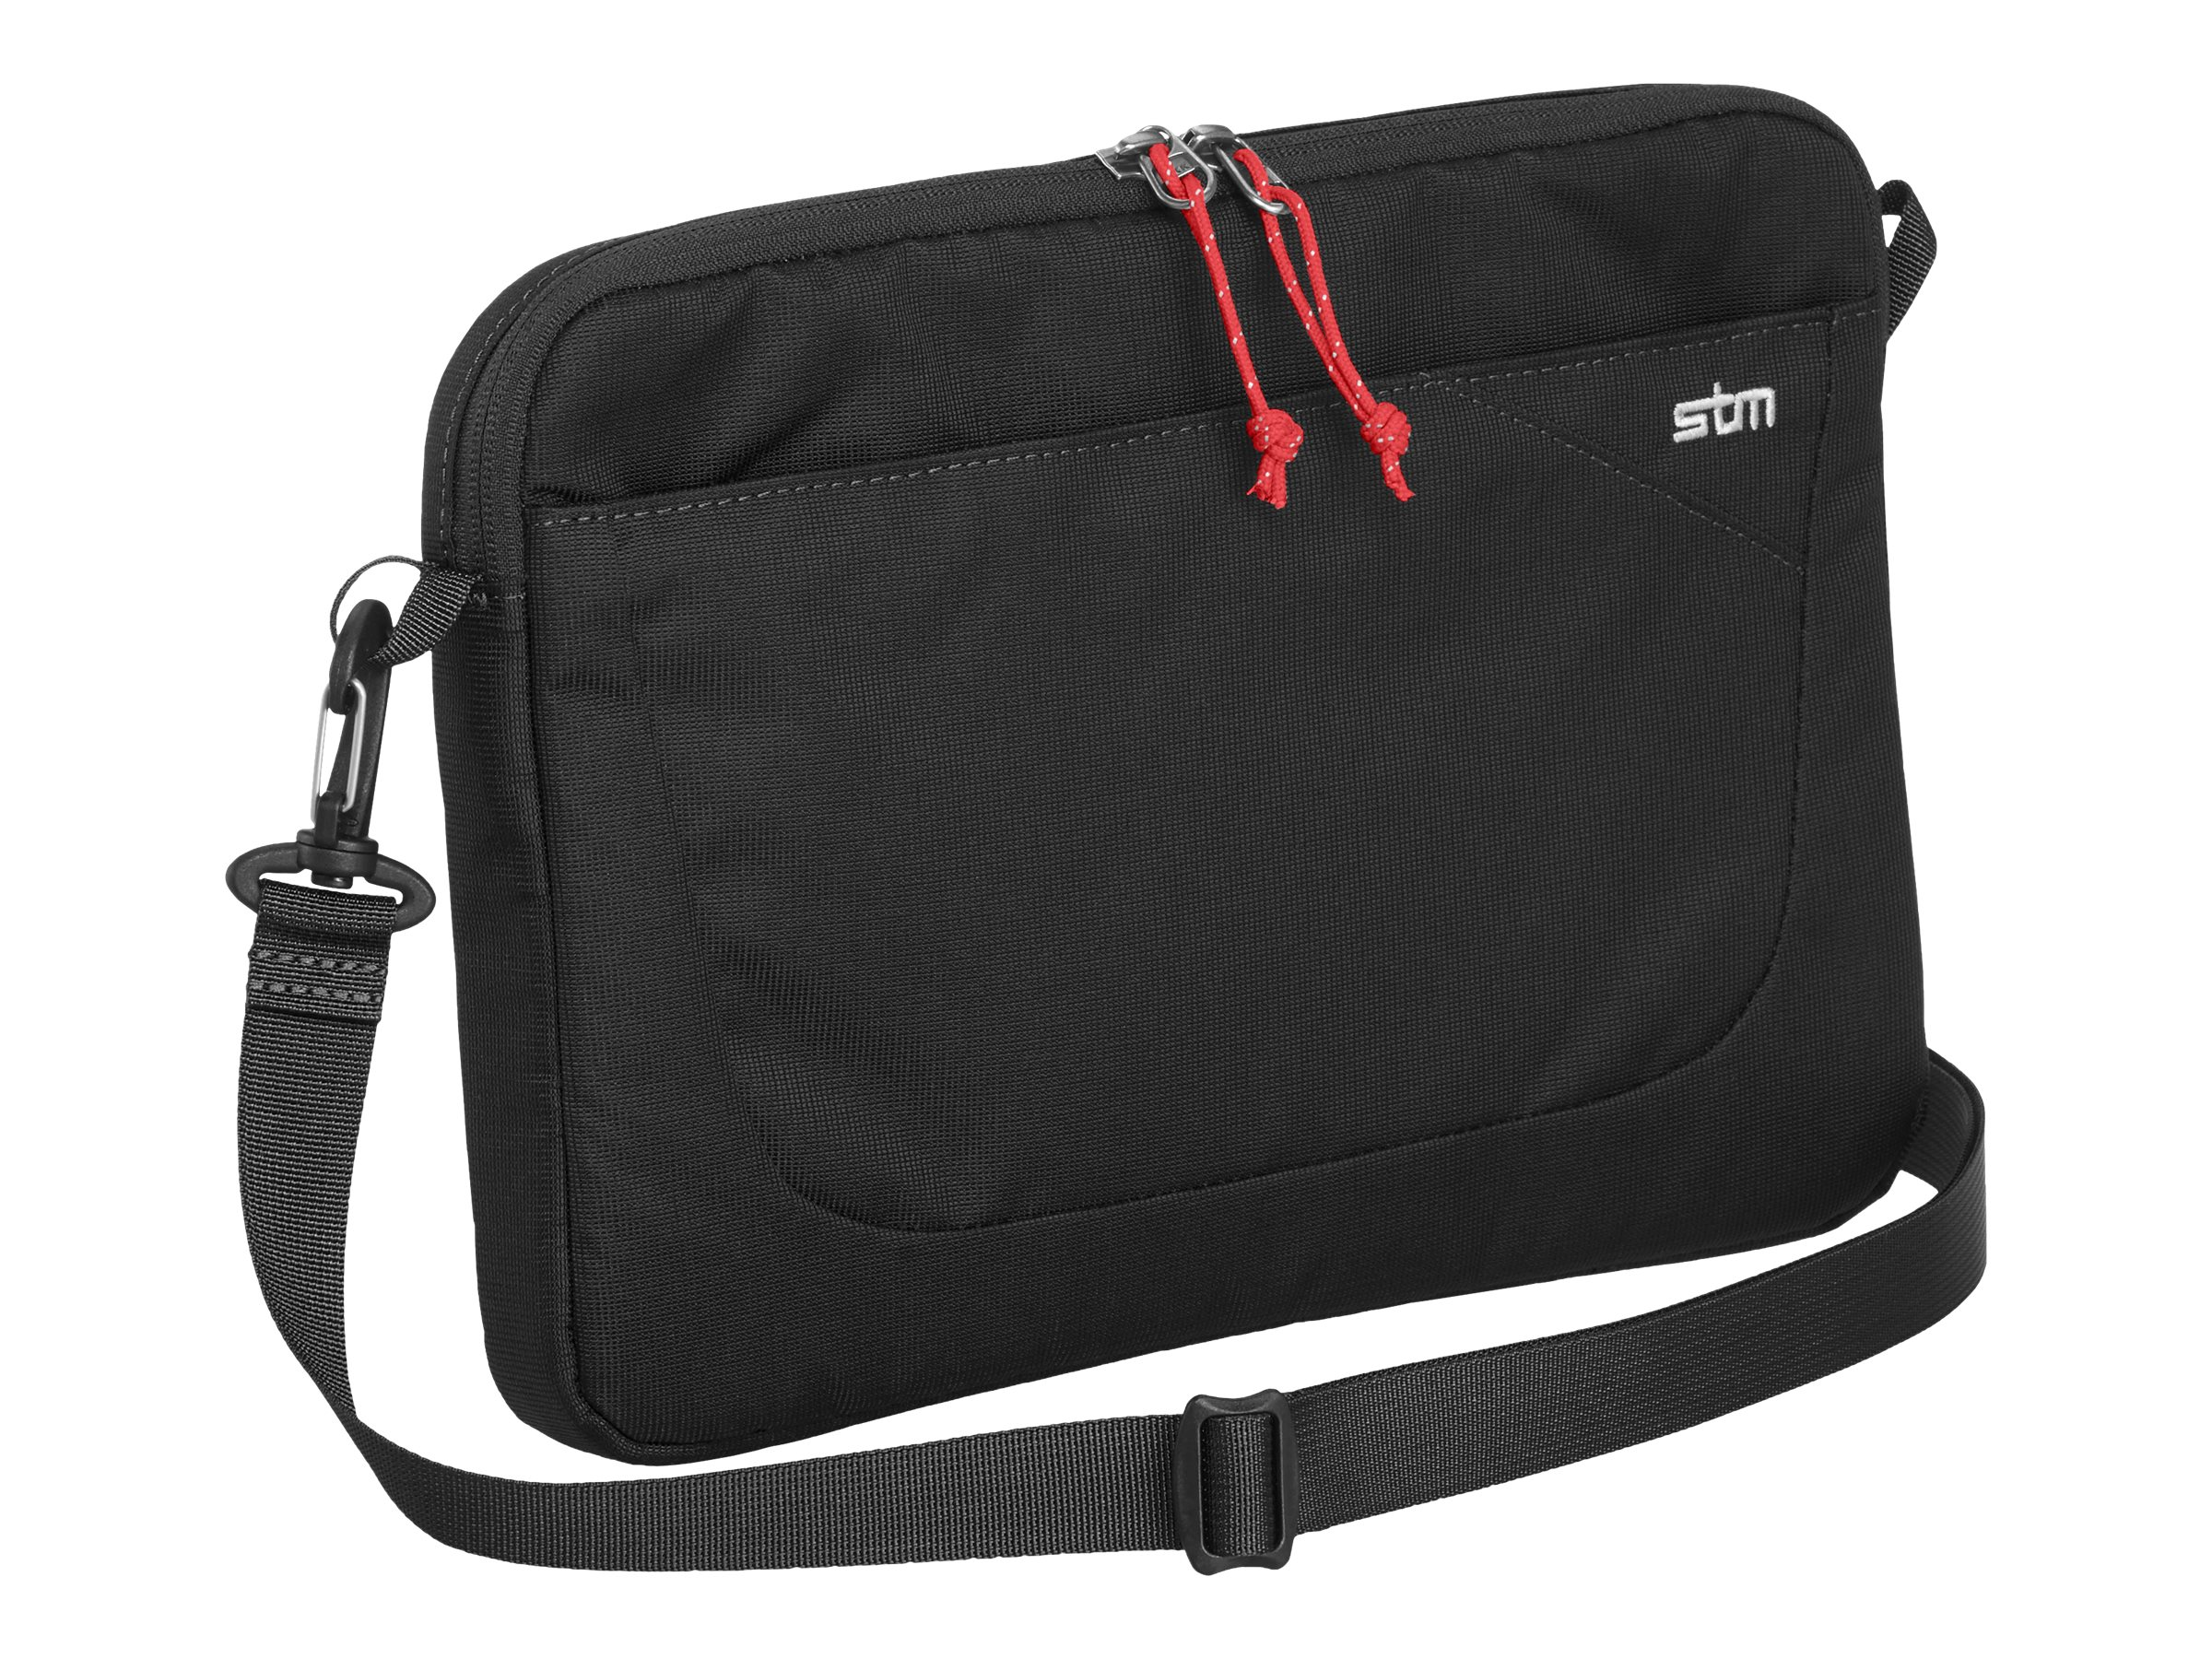 "Stm Blazer13"" Laptop Sleeve"